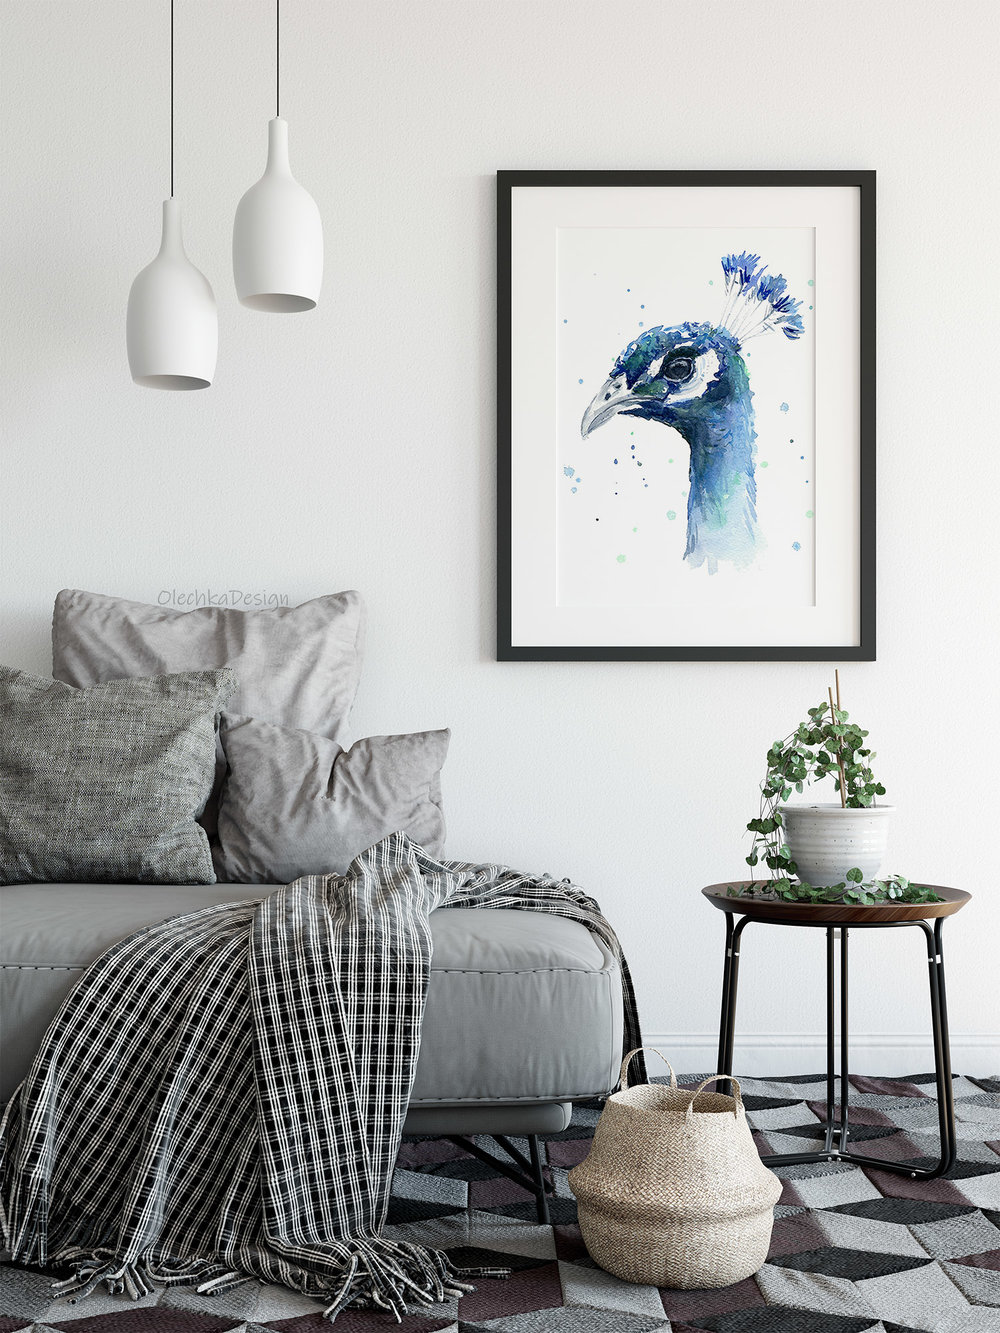 peacock-wall-art-print.jpg